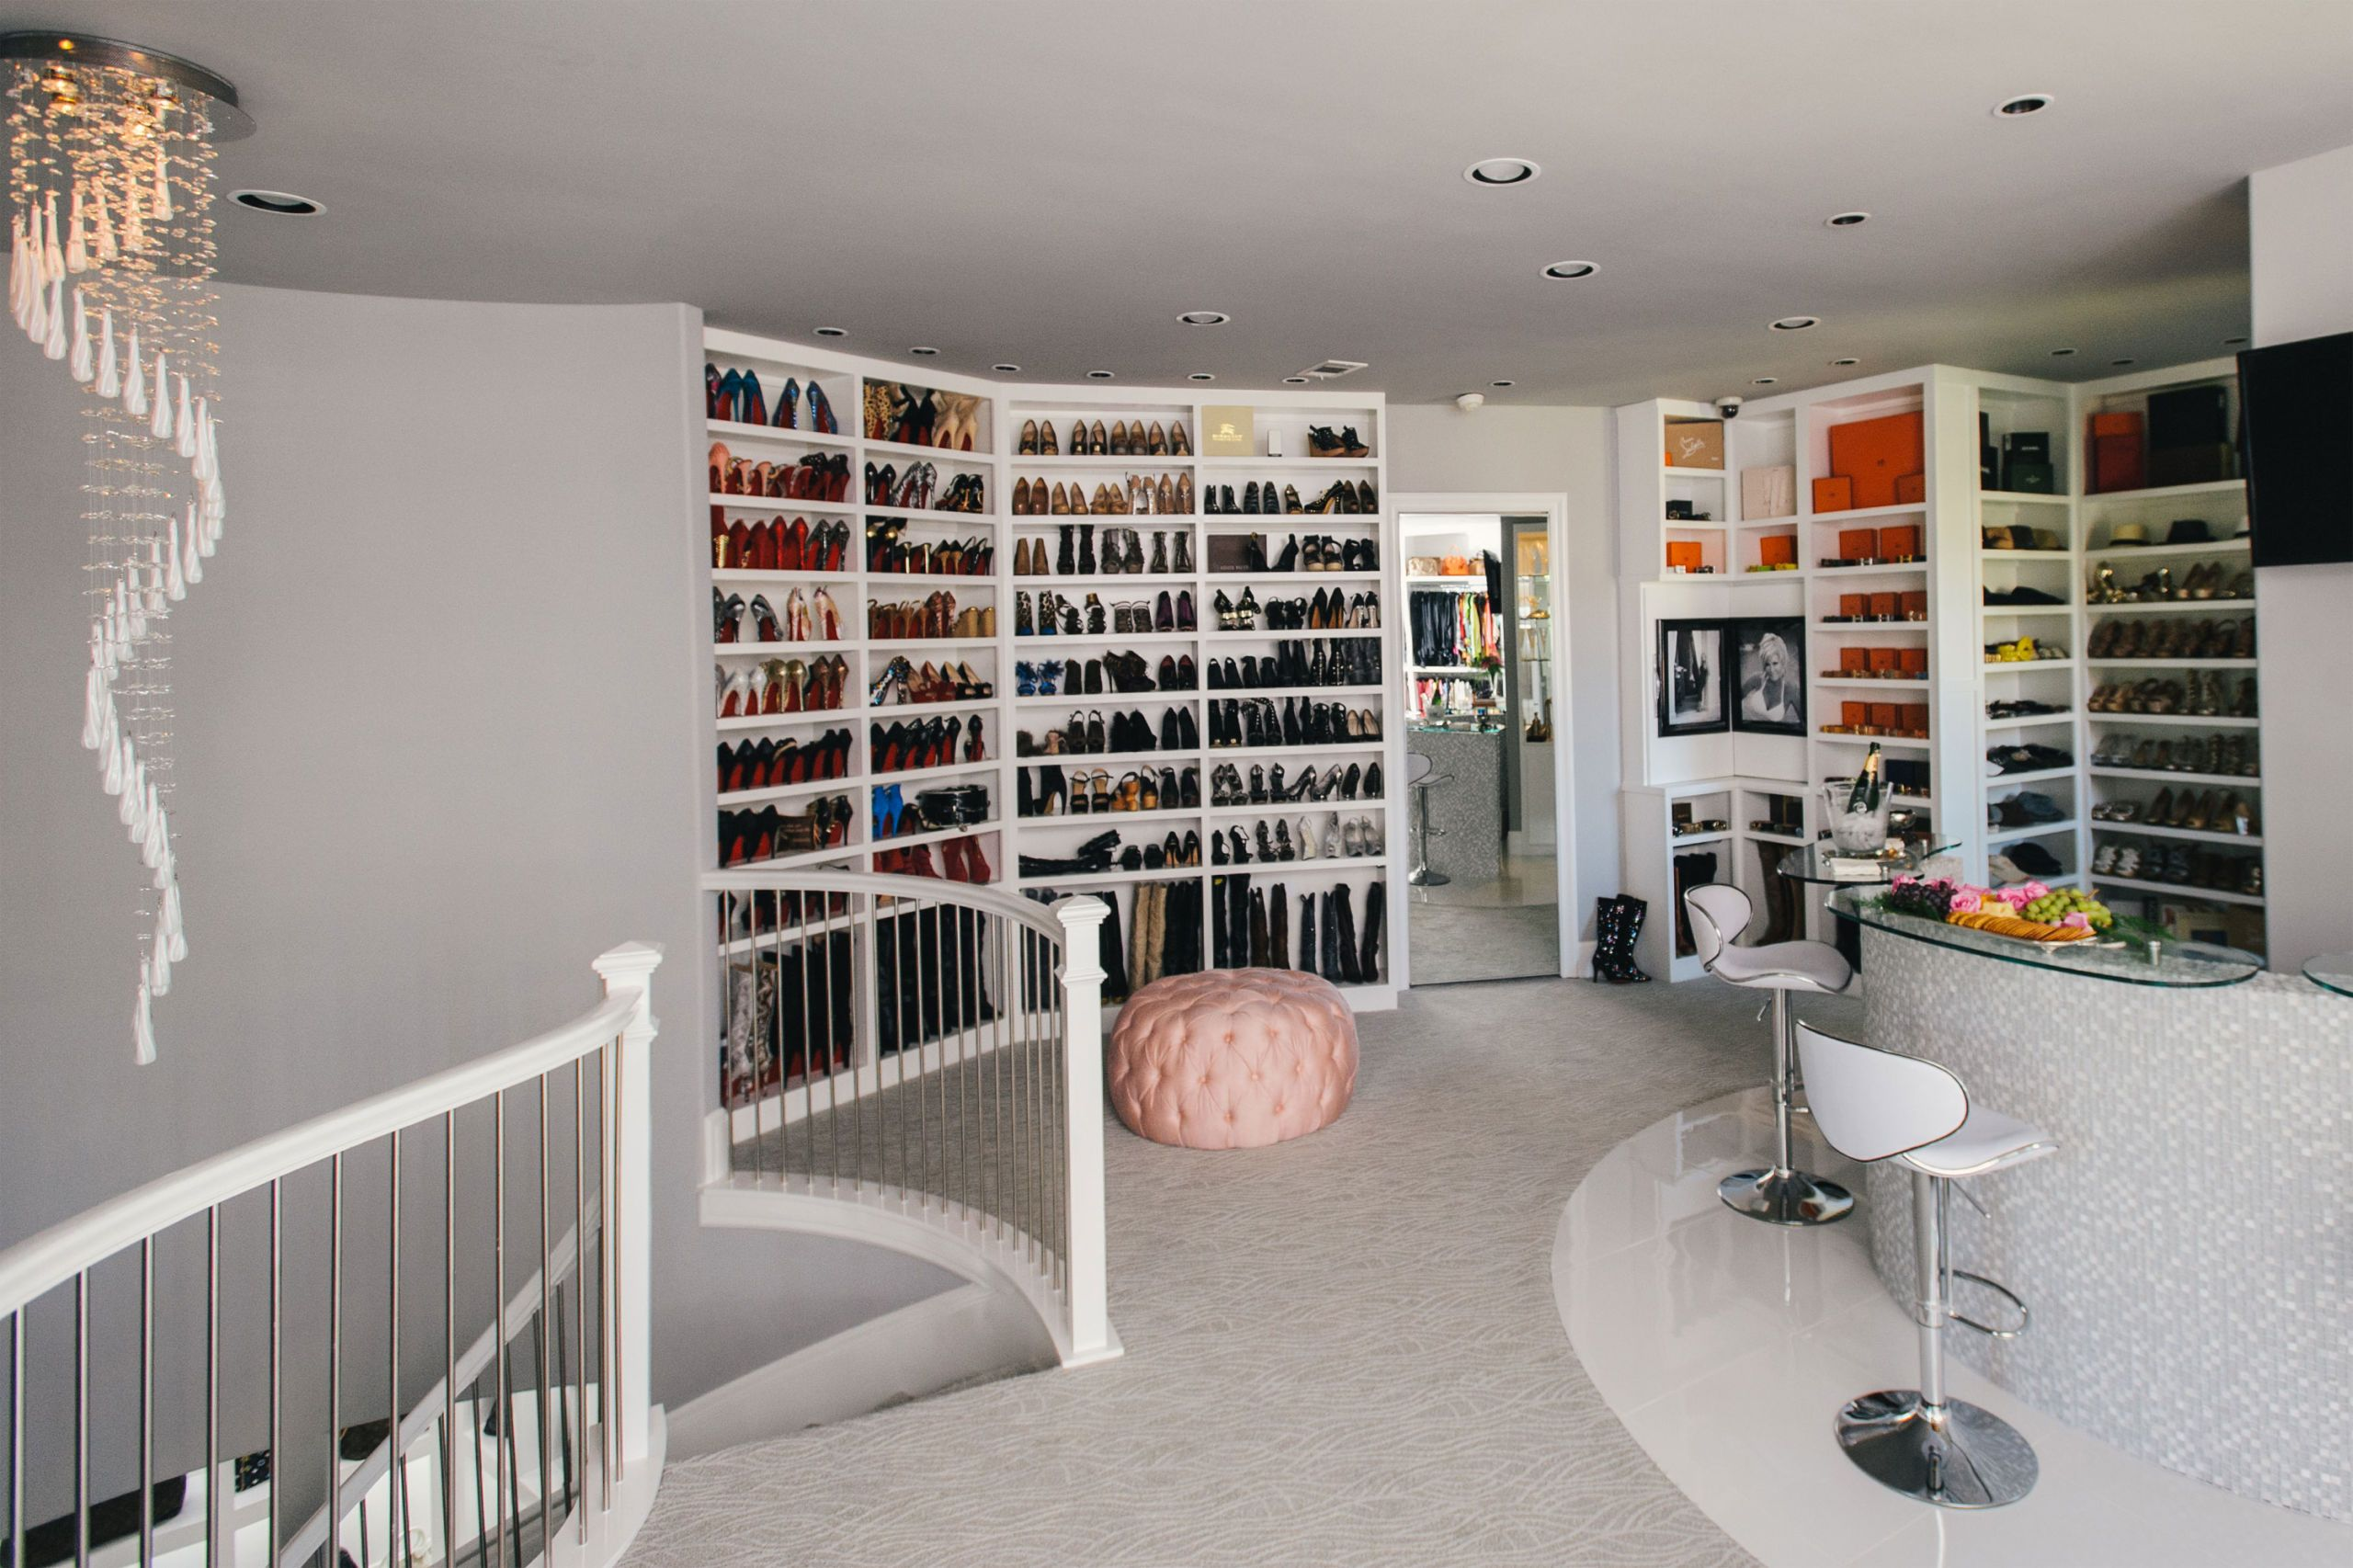 unicareplus in world biggest photos of celebrity closet the decor closets through walk design home ideas best